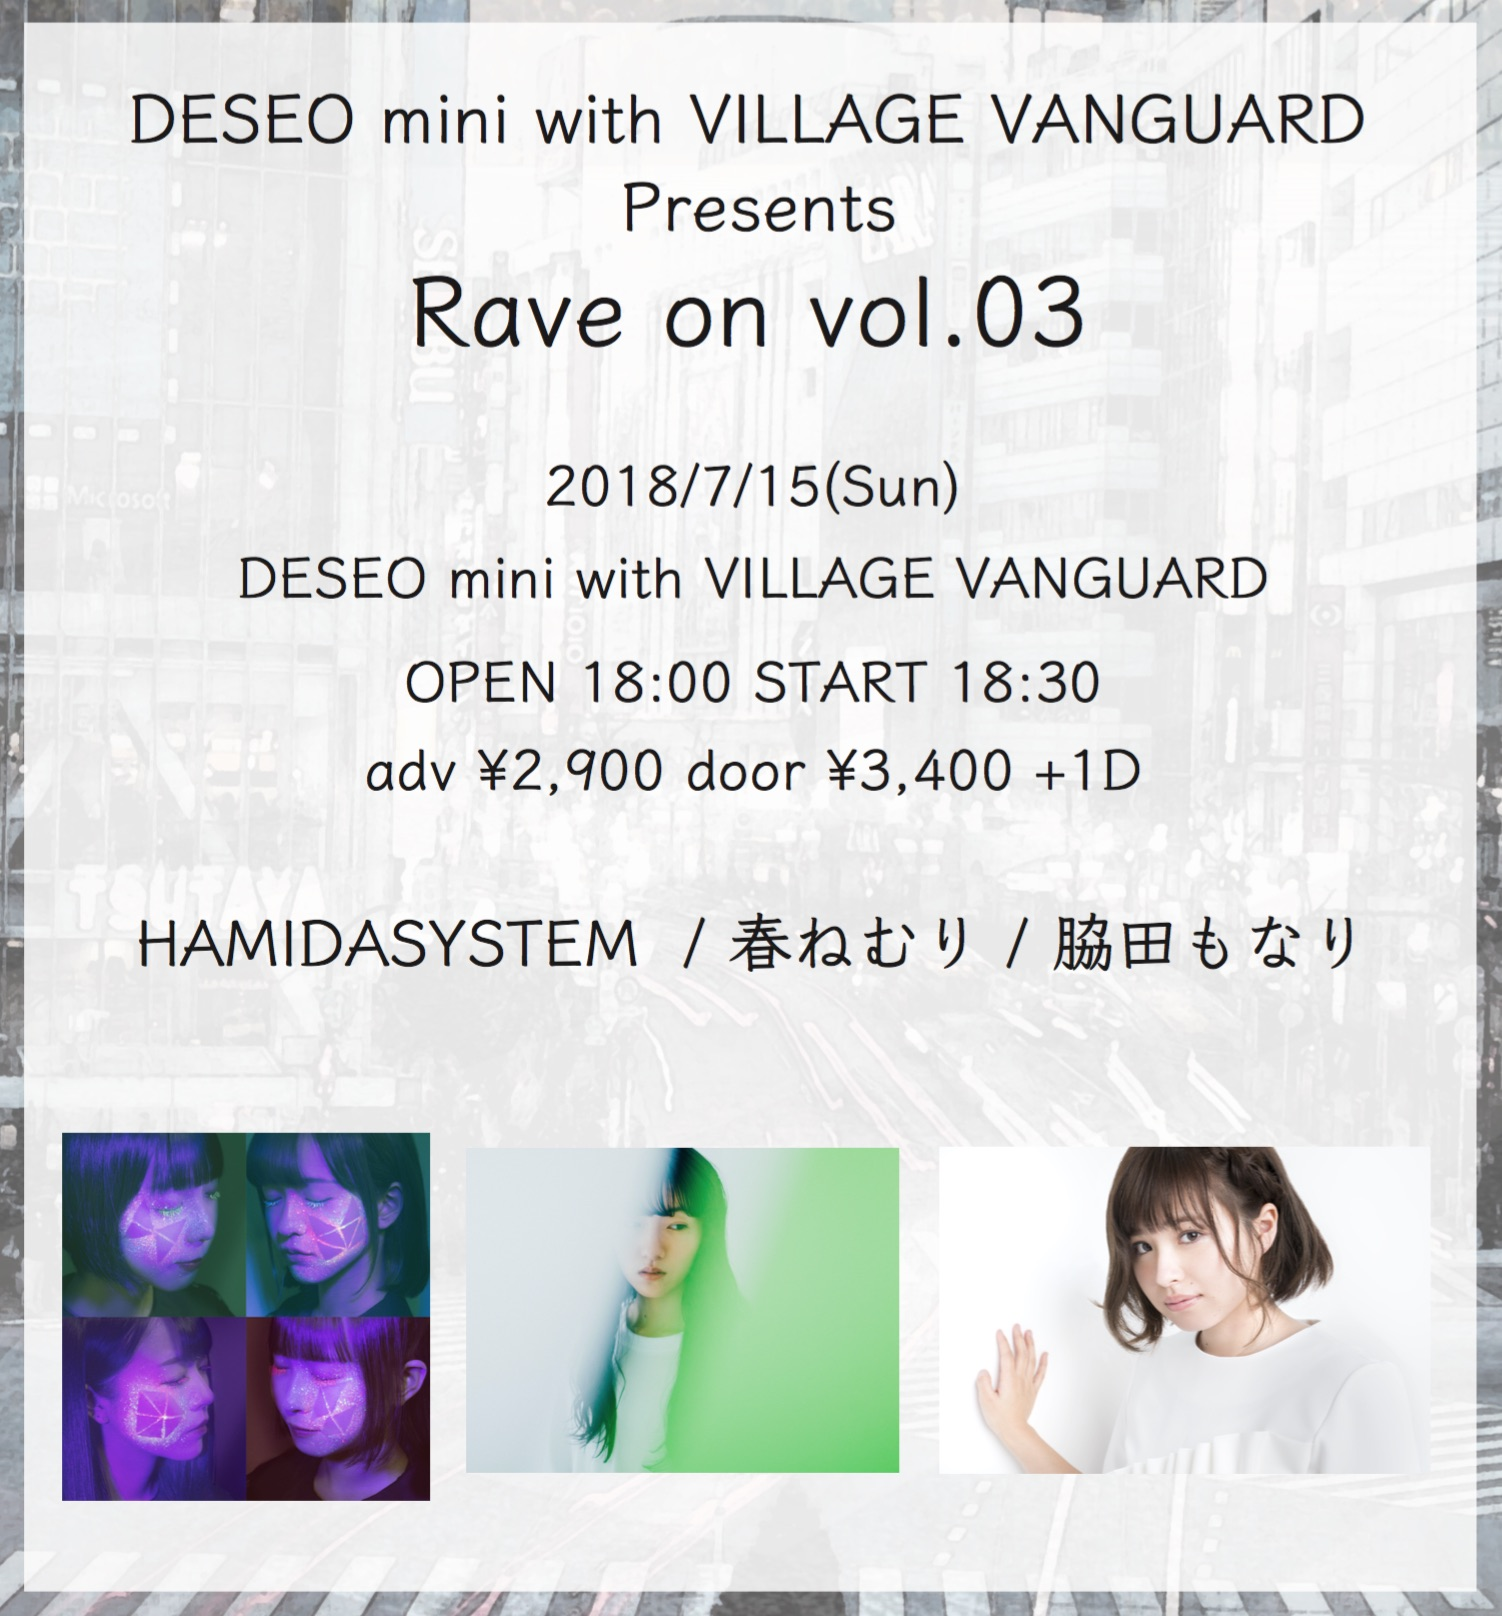 DESEO mini Presents「Rave on vol.03」